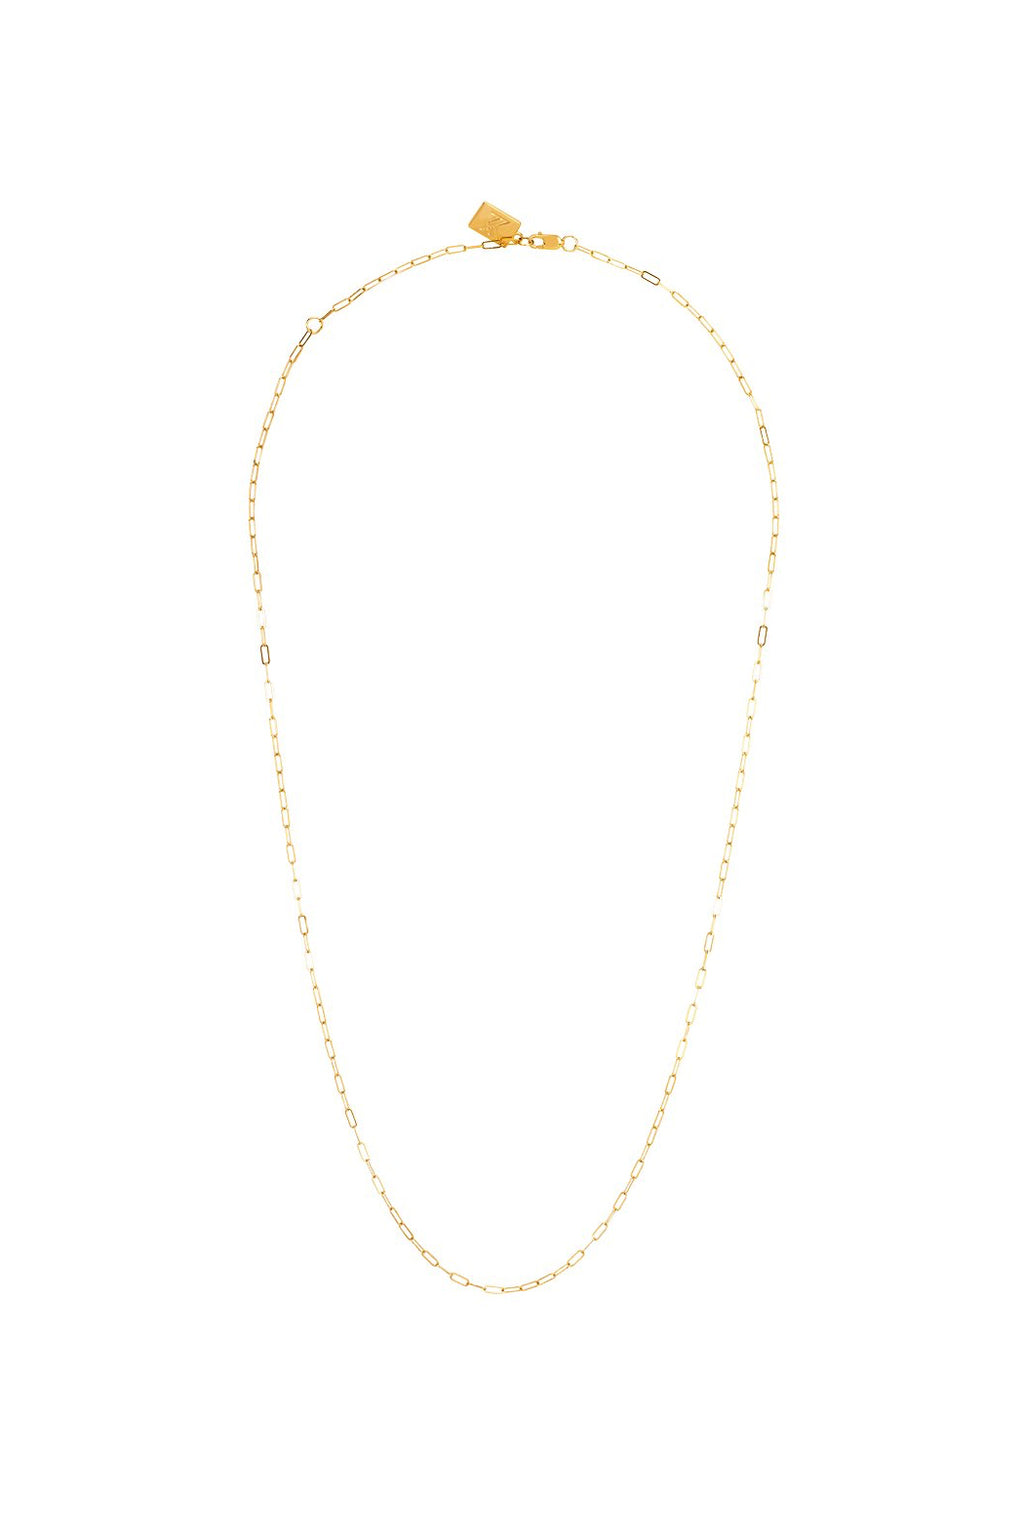 Miranda Frye Alex Chain 21-23 inches